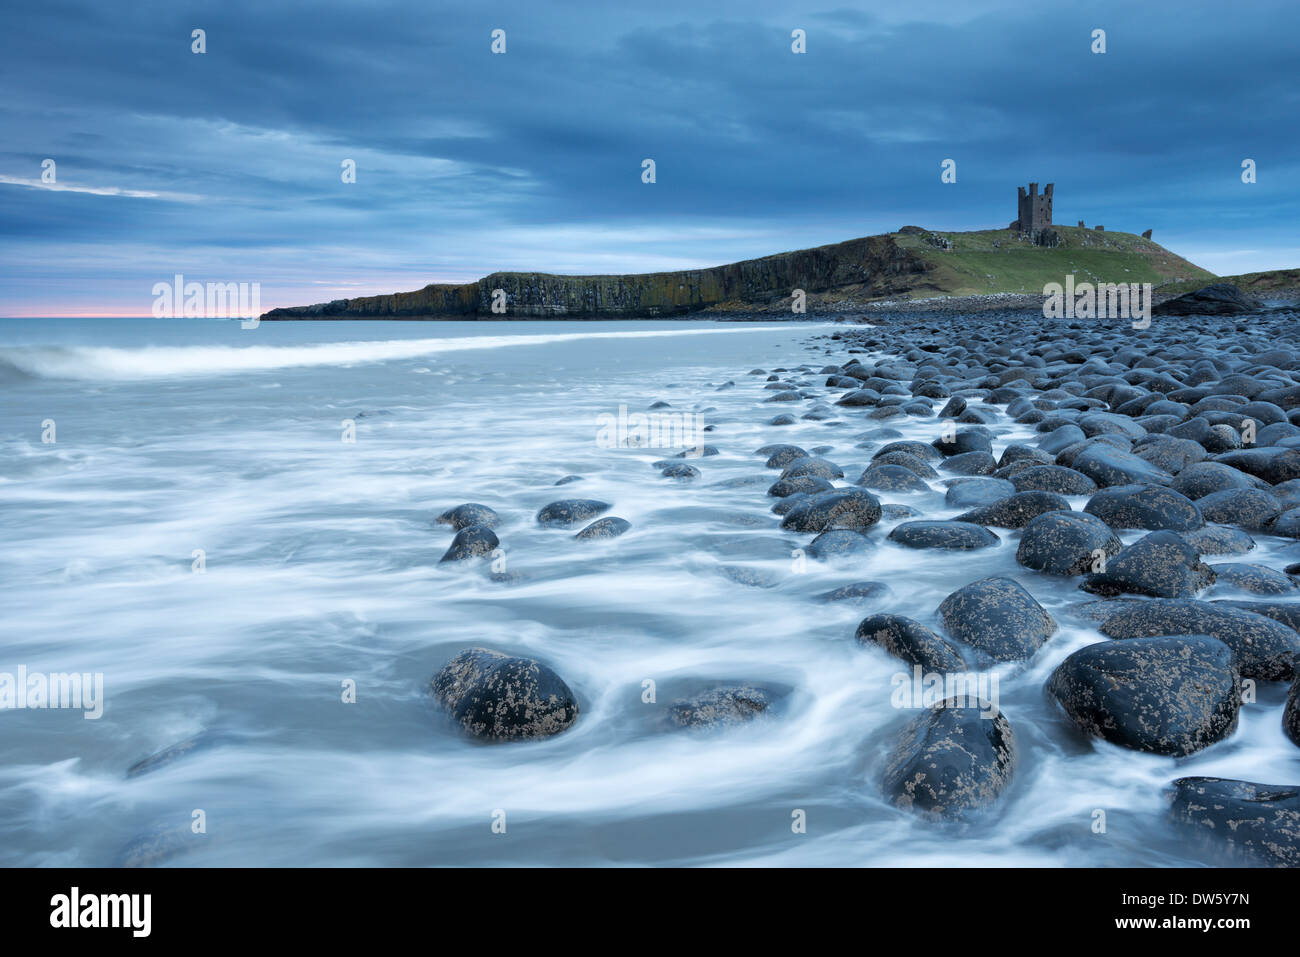 The ruins of Dunstanburgh Castle overlooking the boulder strewn shores of Embleton Bay, Northumberland, England. - Stock Image